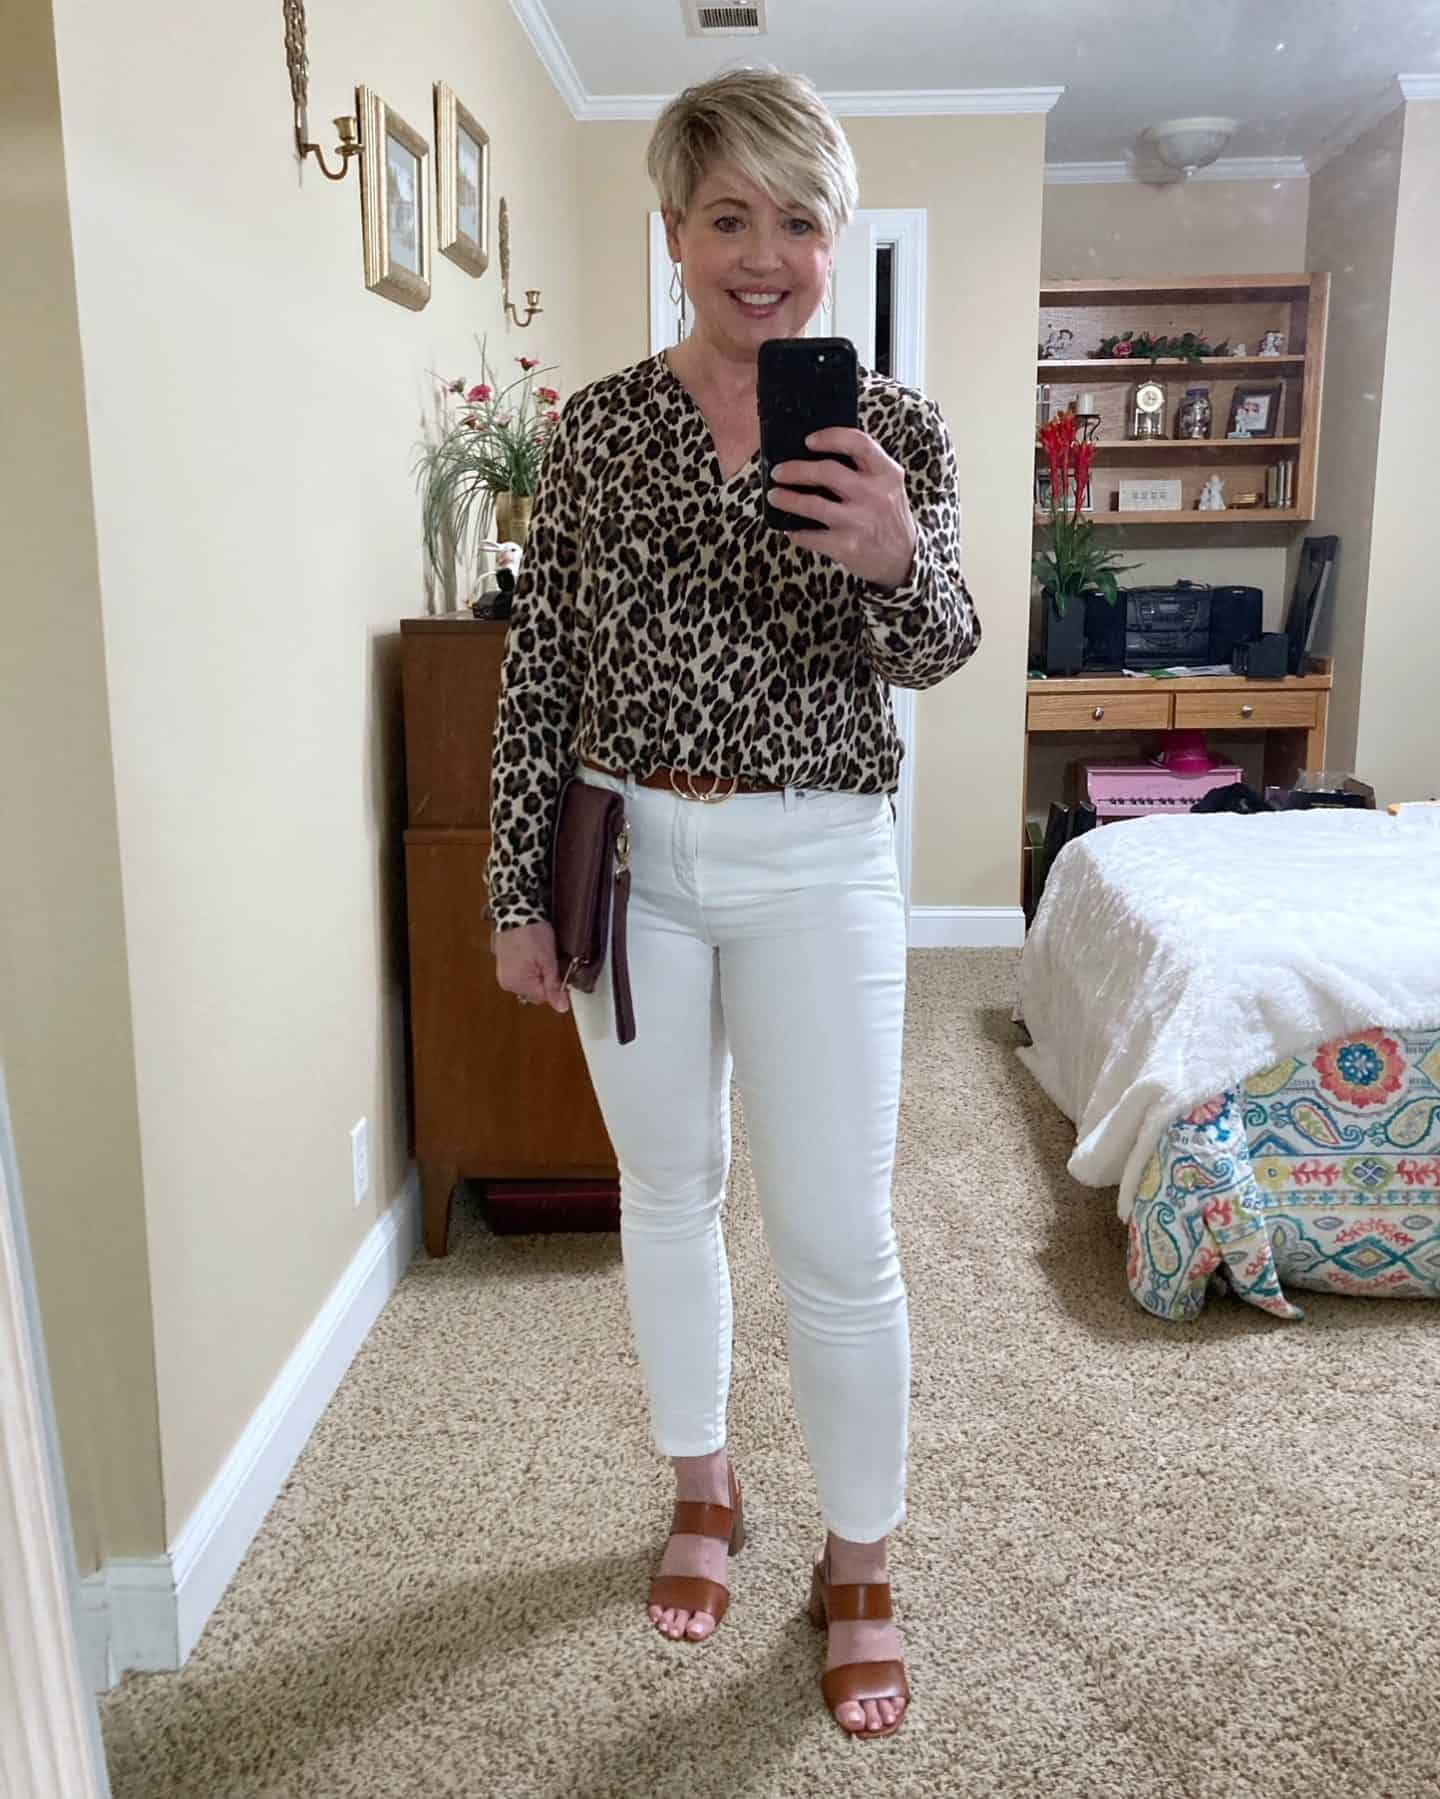 leopard print top with white jeans outfit